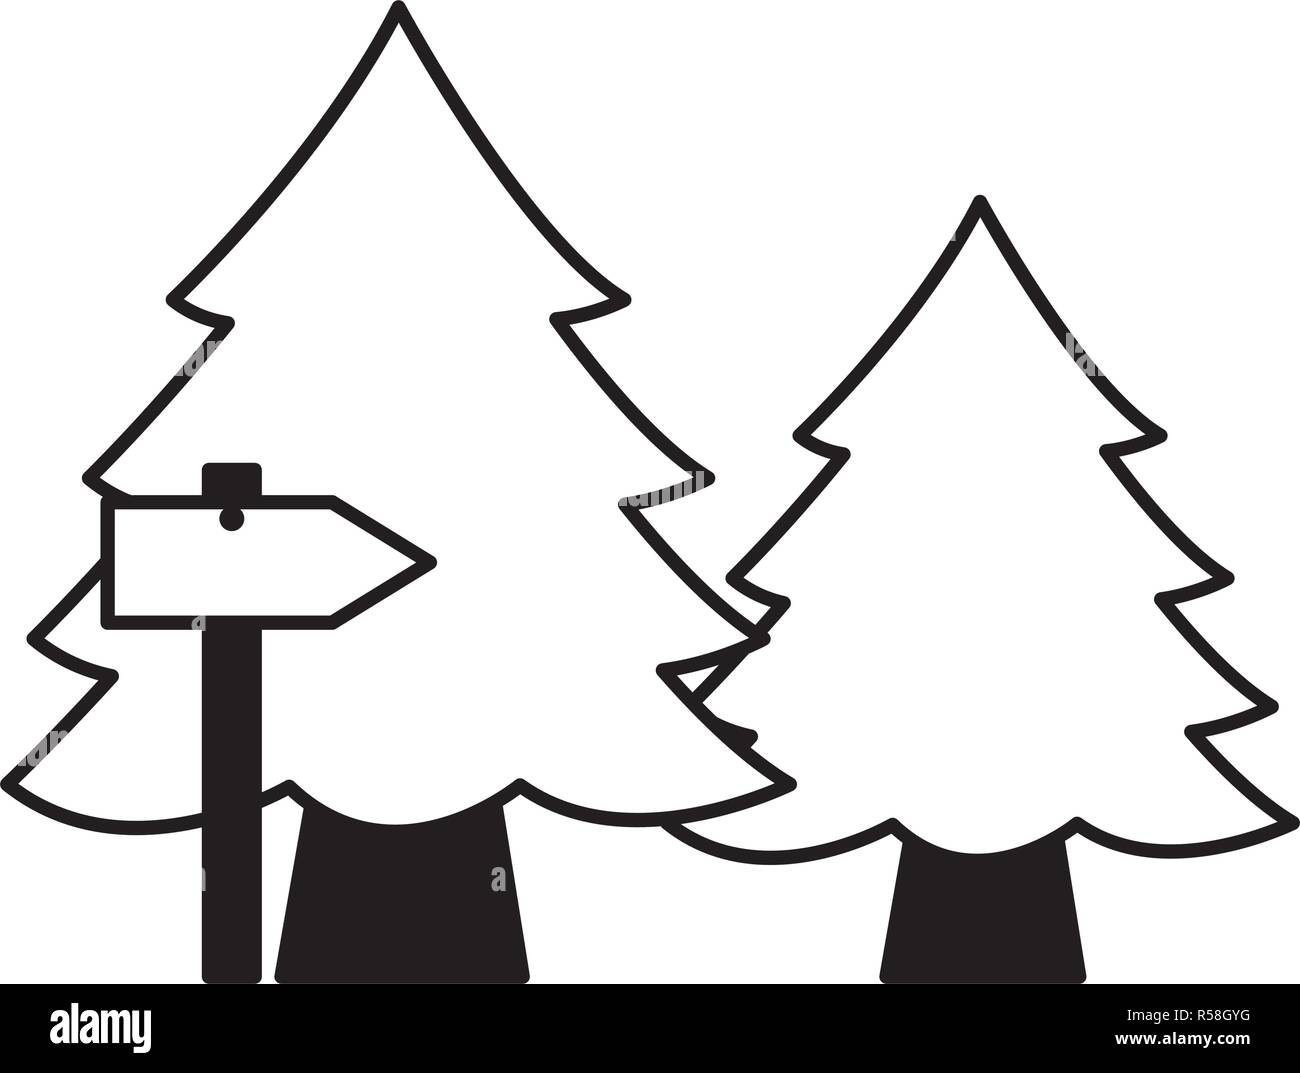 pine trees and guide arrow camping summer vector illustration - Stock Image